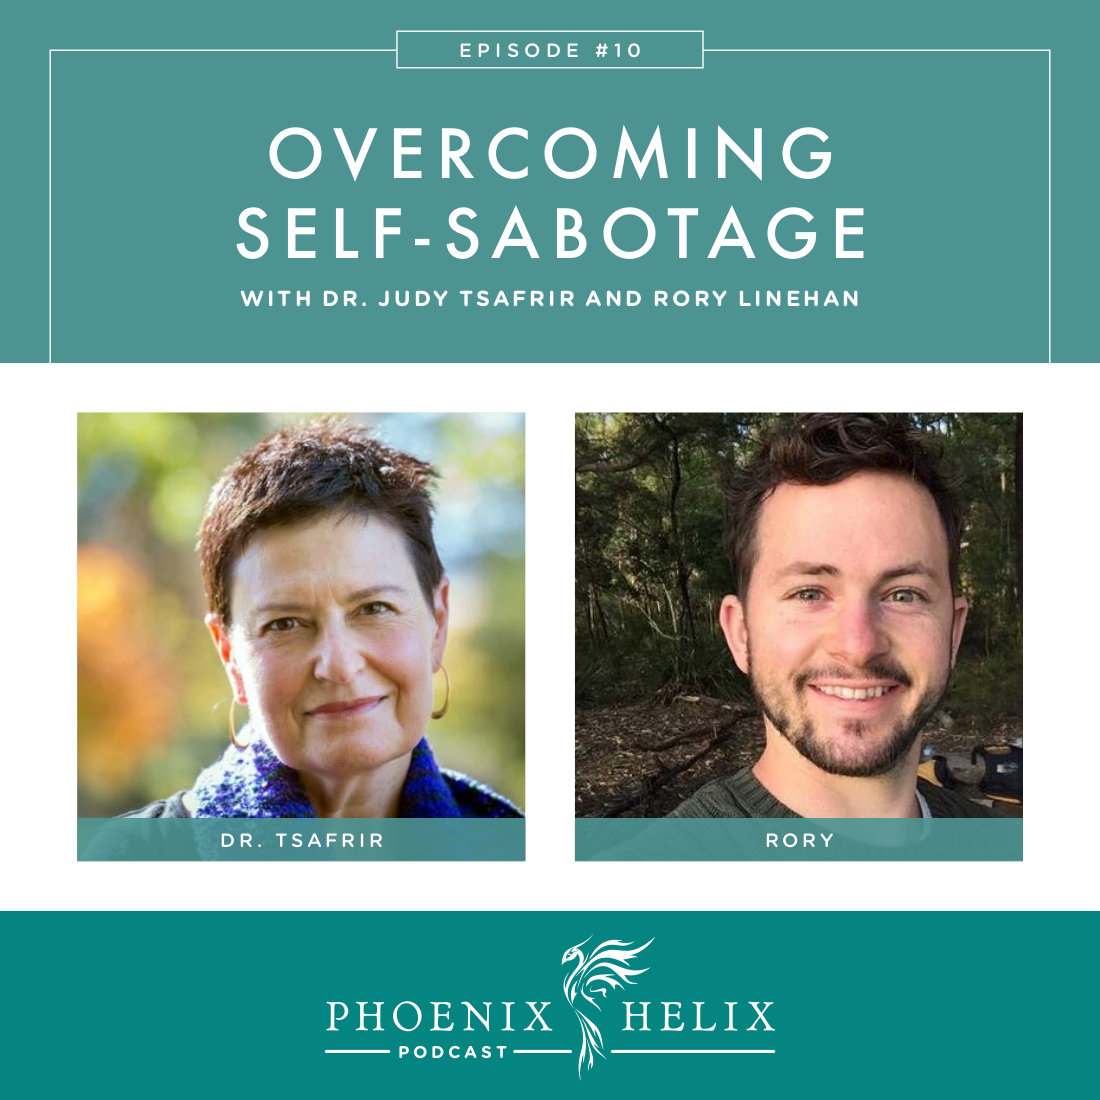 Best of the Phoenix Helix Podcast: Overcoming Self-Sabotage with Dr. Judy Tsafrir and Rory Linehan